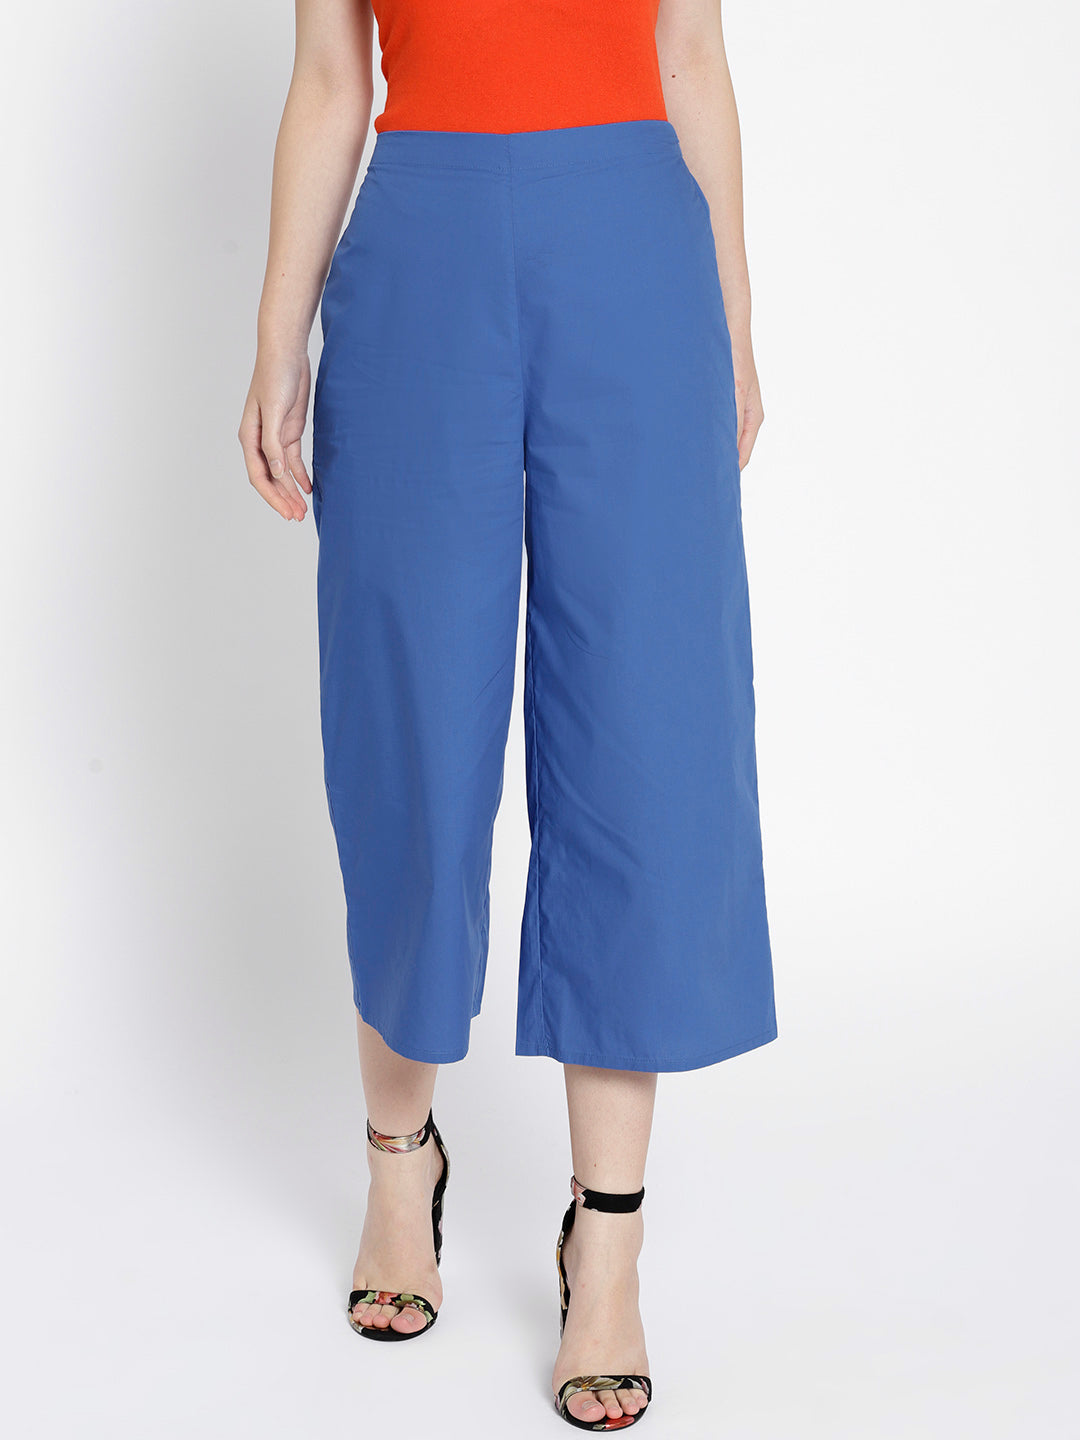 Blue Regular Fit Solid Culottes